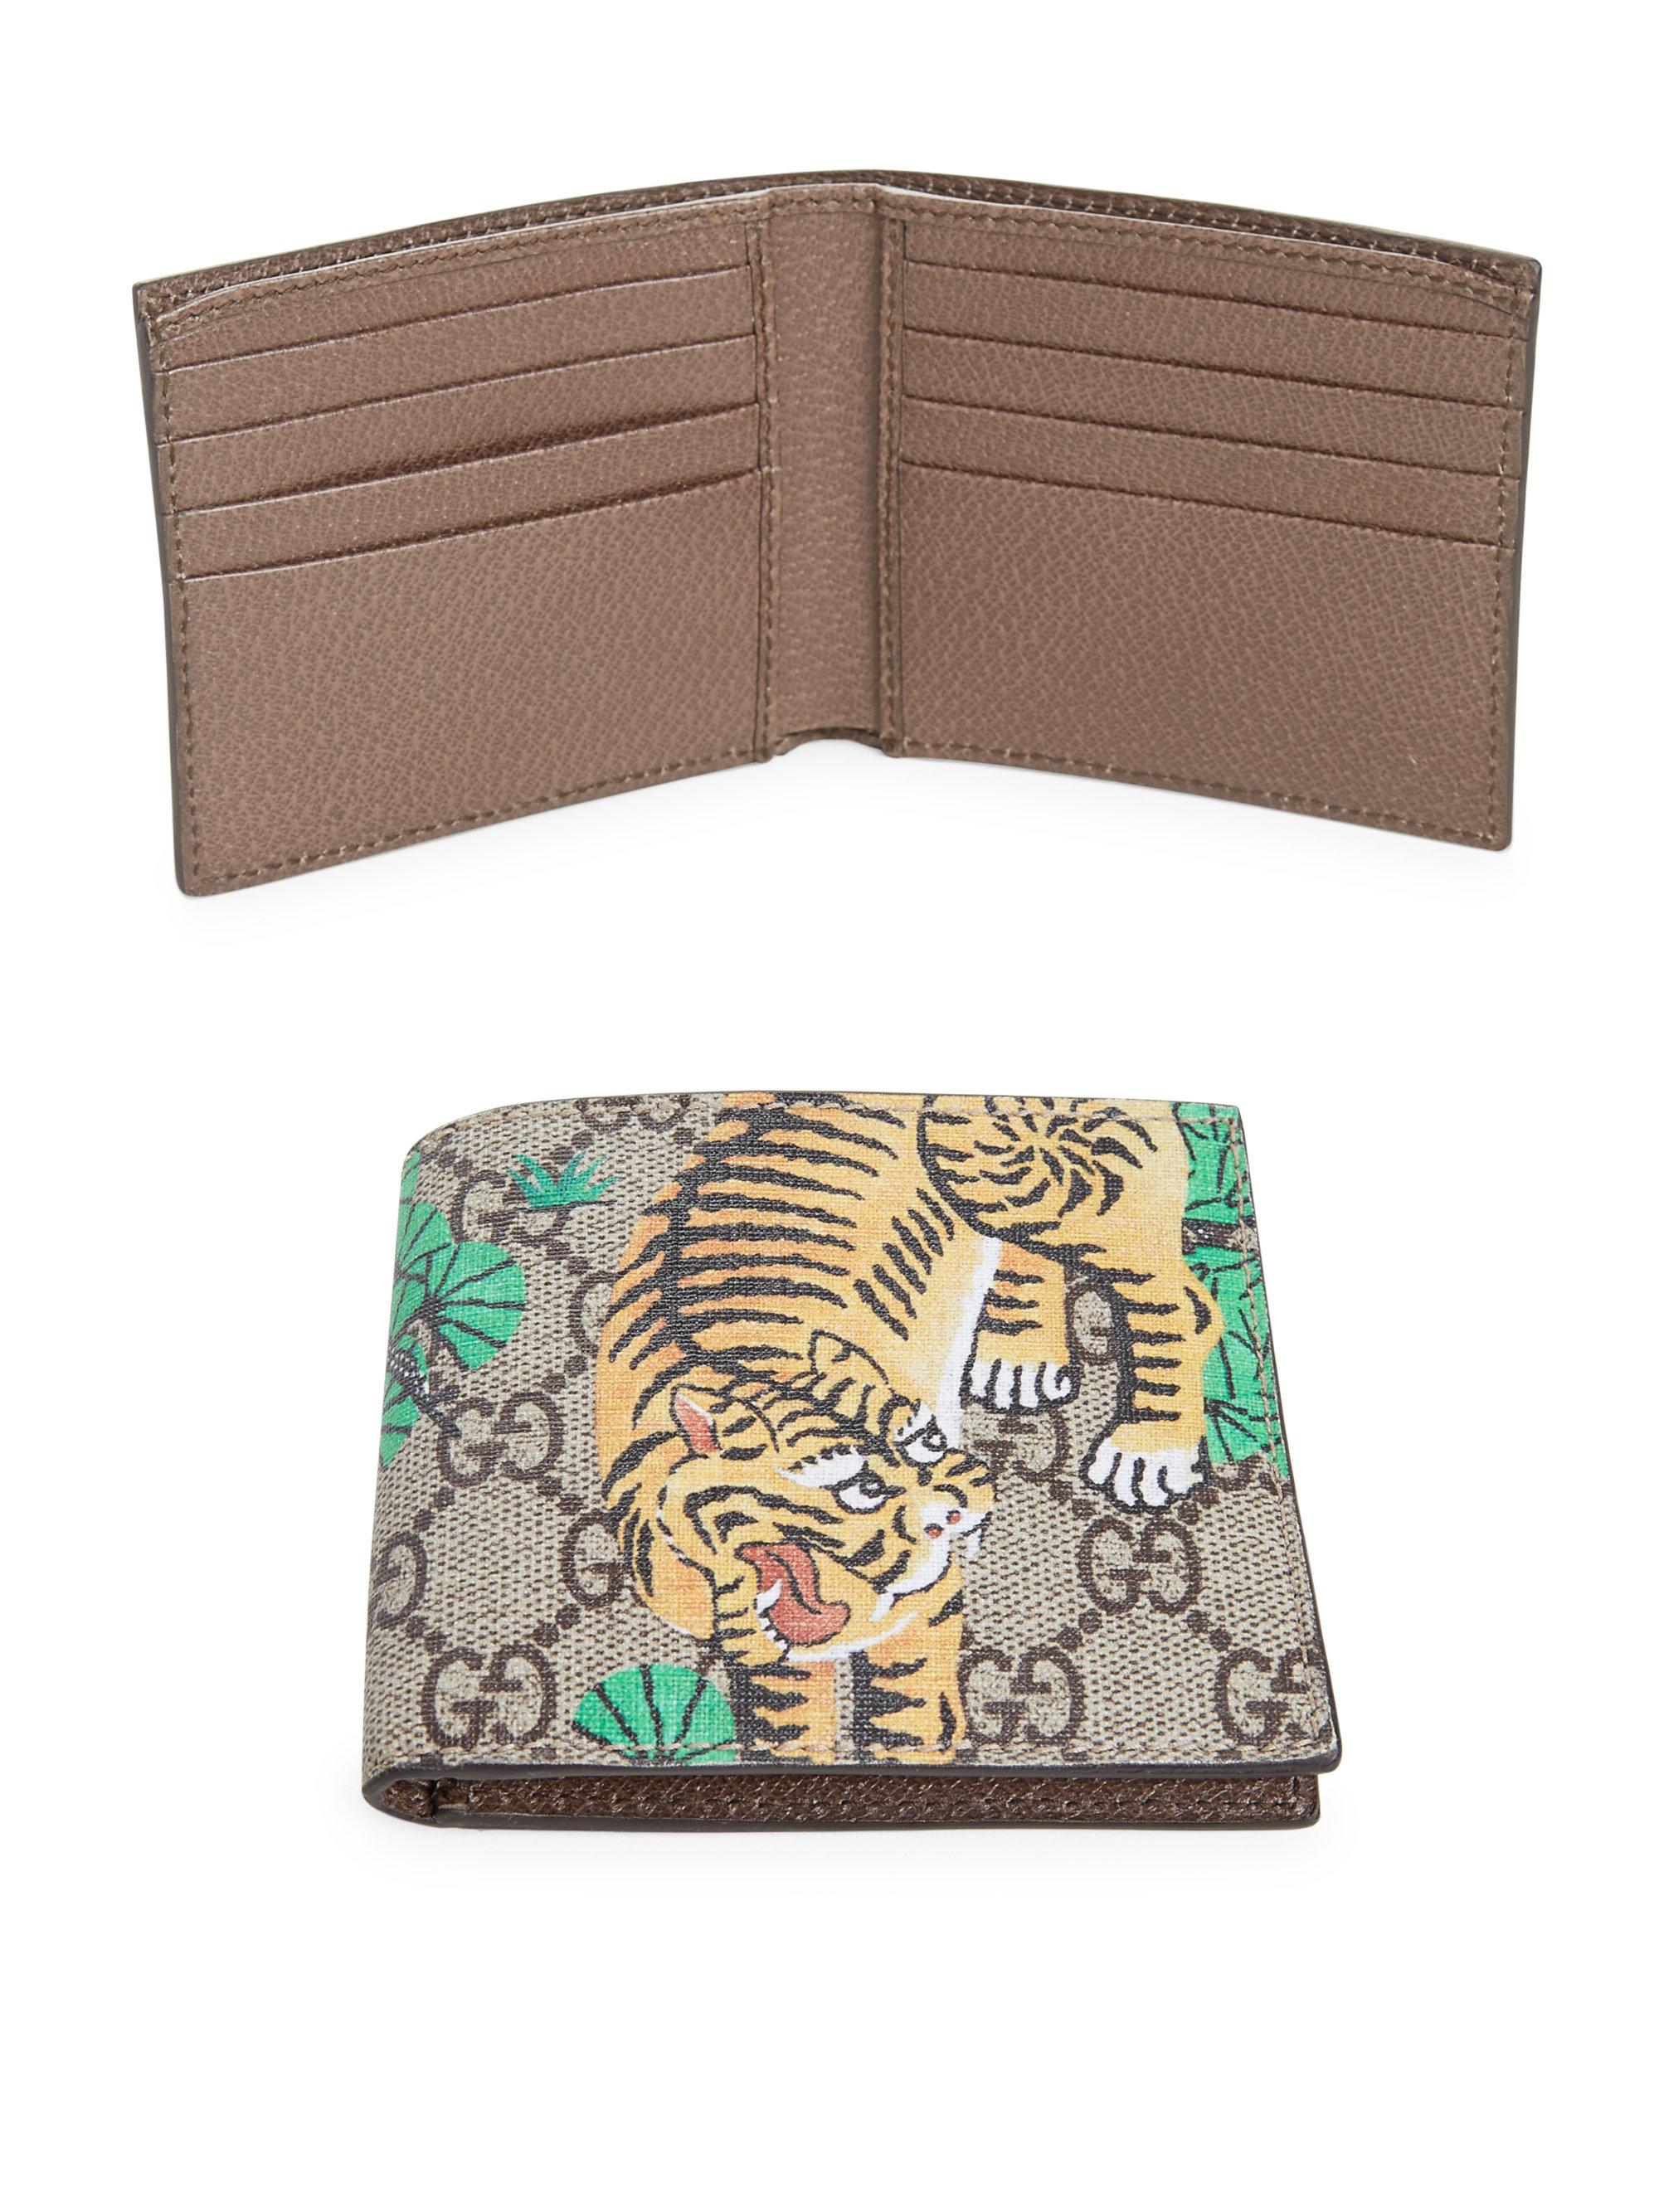 a3727c25743 Lyst - Gucci Gg Supreme Tiger Billfold Wallet in Natural for Men